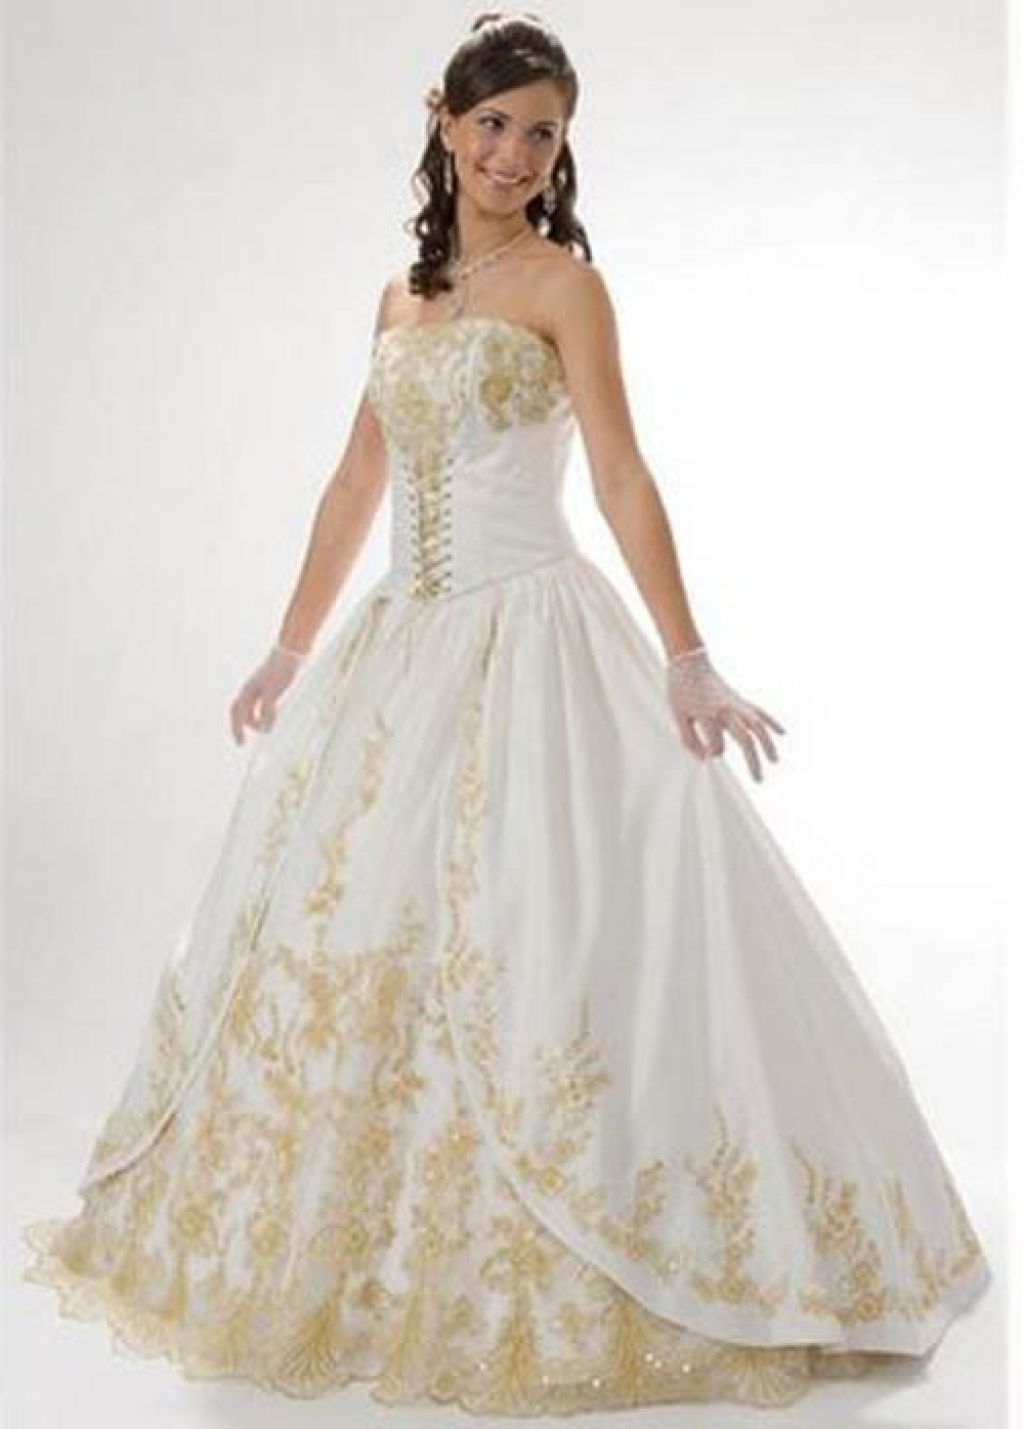 White and gold wedding dress gold wedding dresses for White and gold wedding dresses